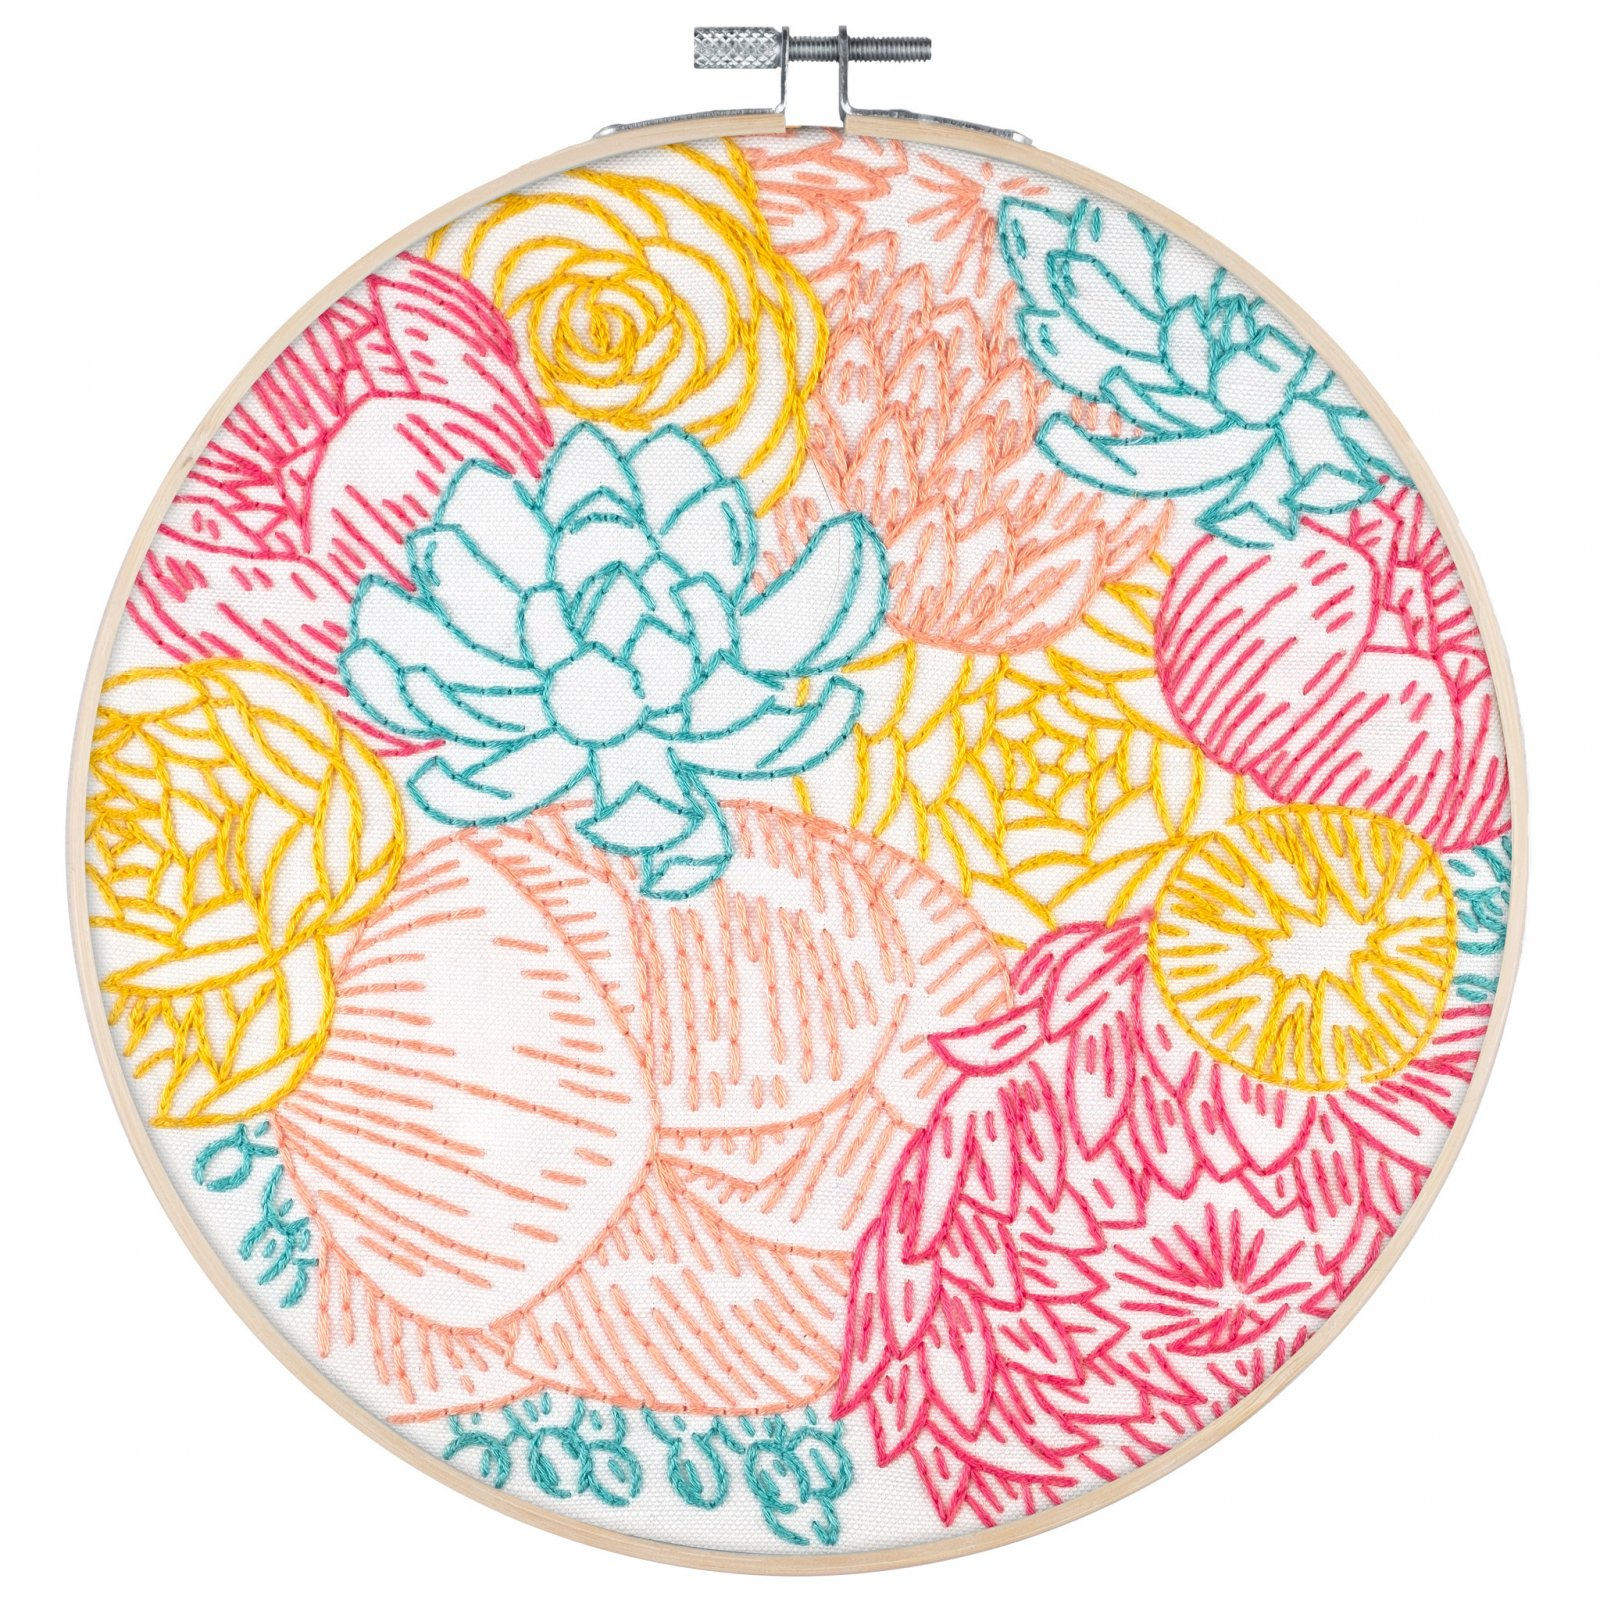 PopLush Embroidery Kit 8 - Floral Profusion